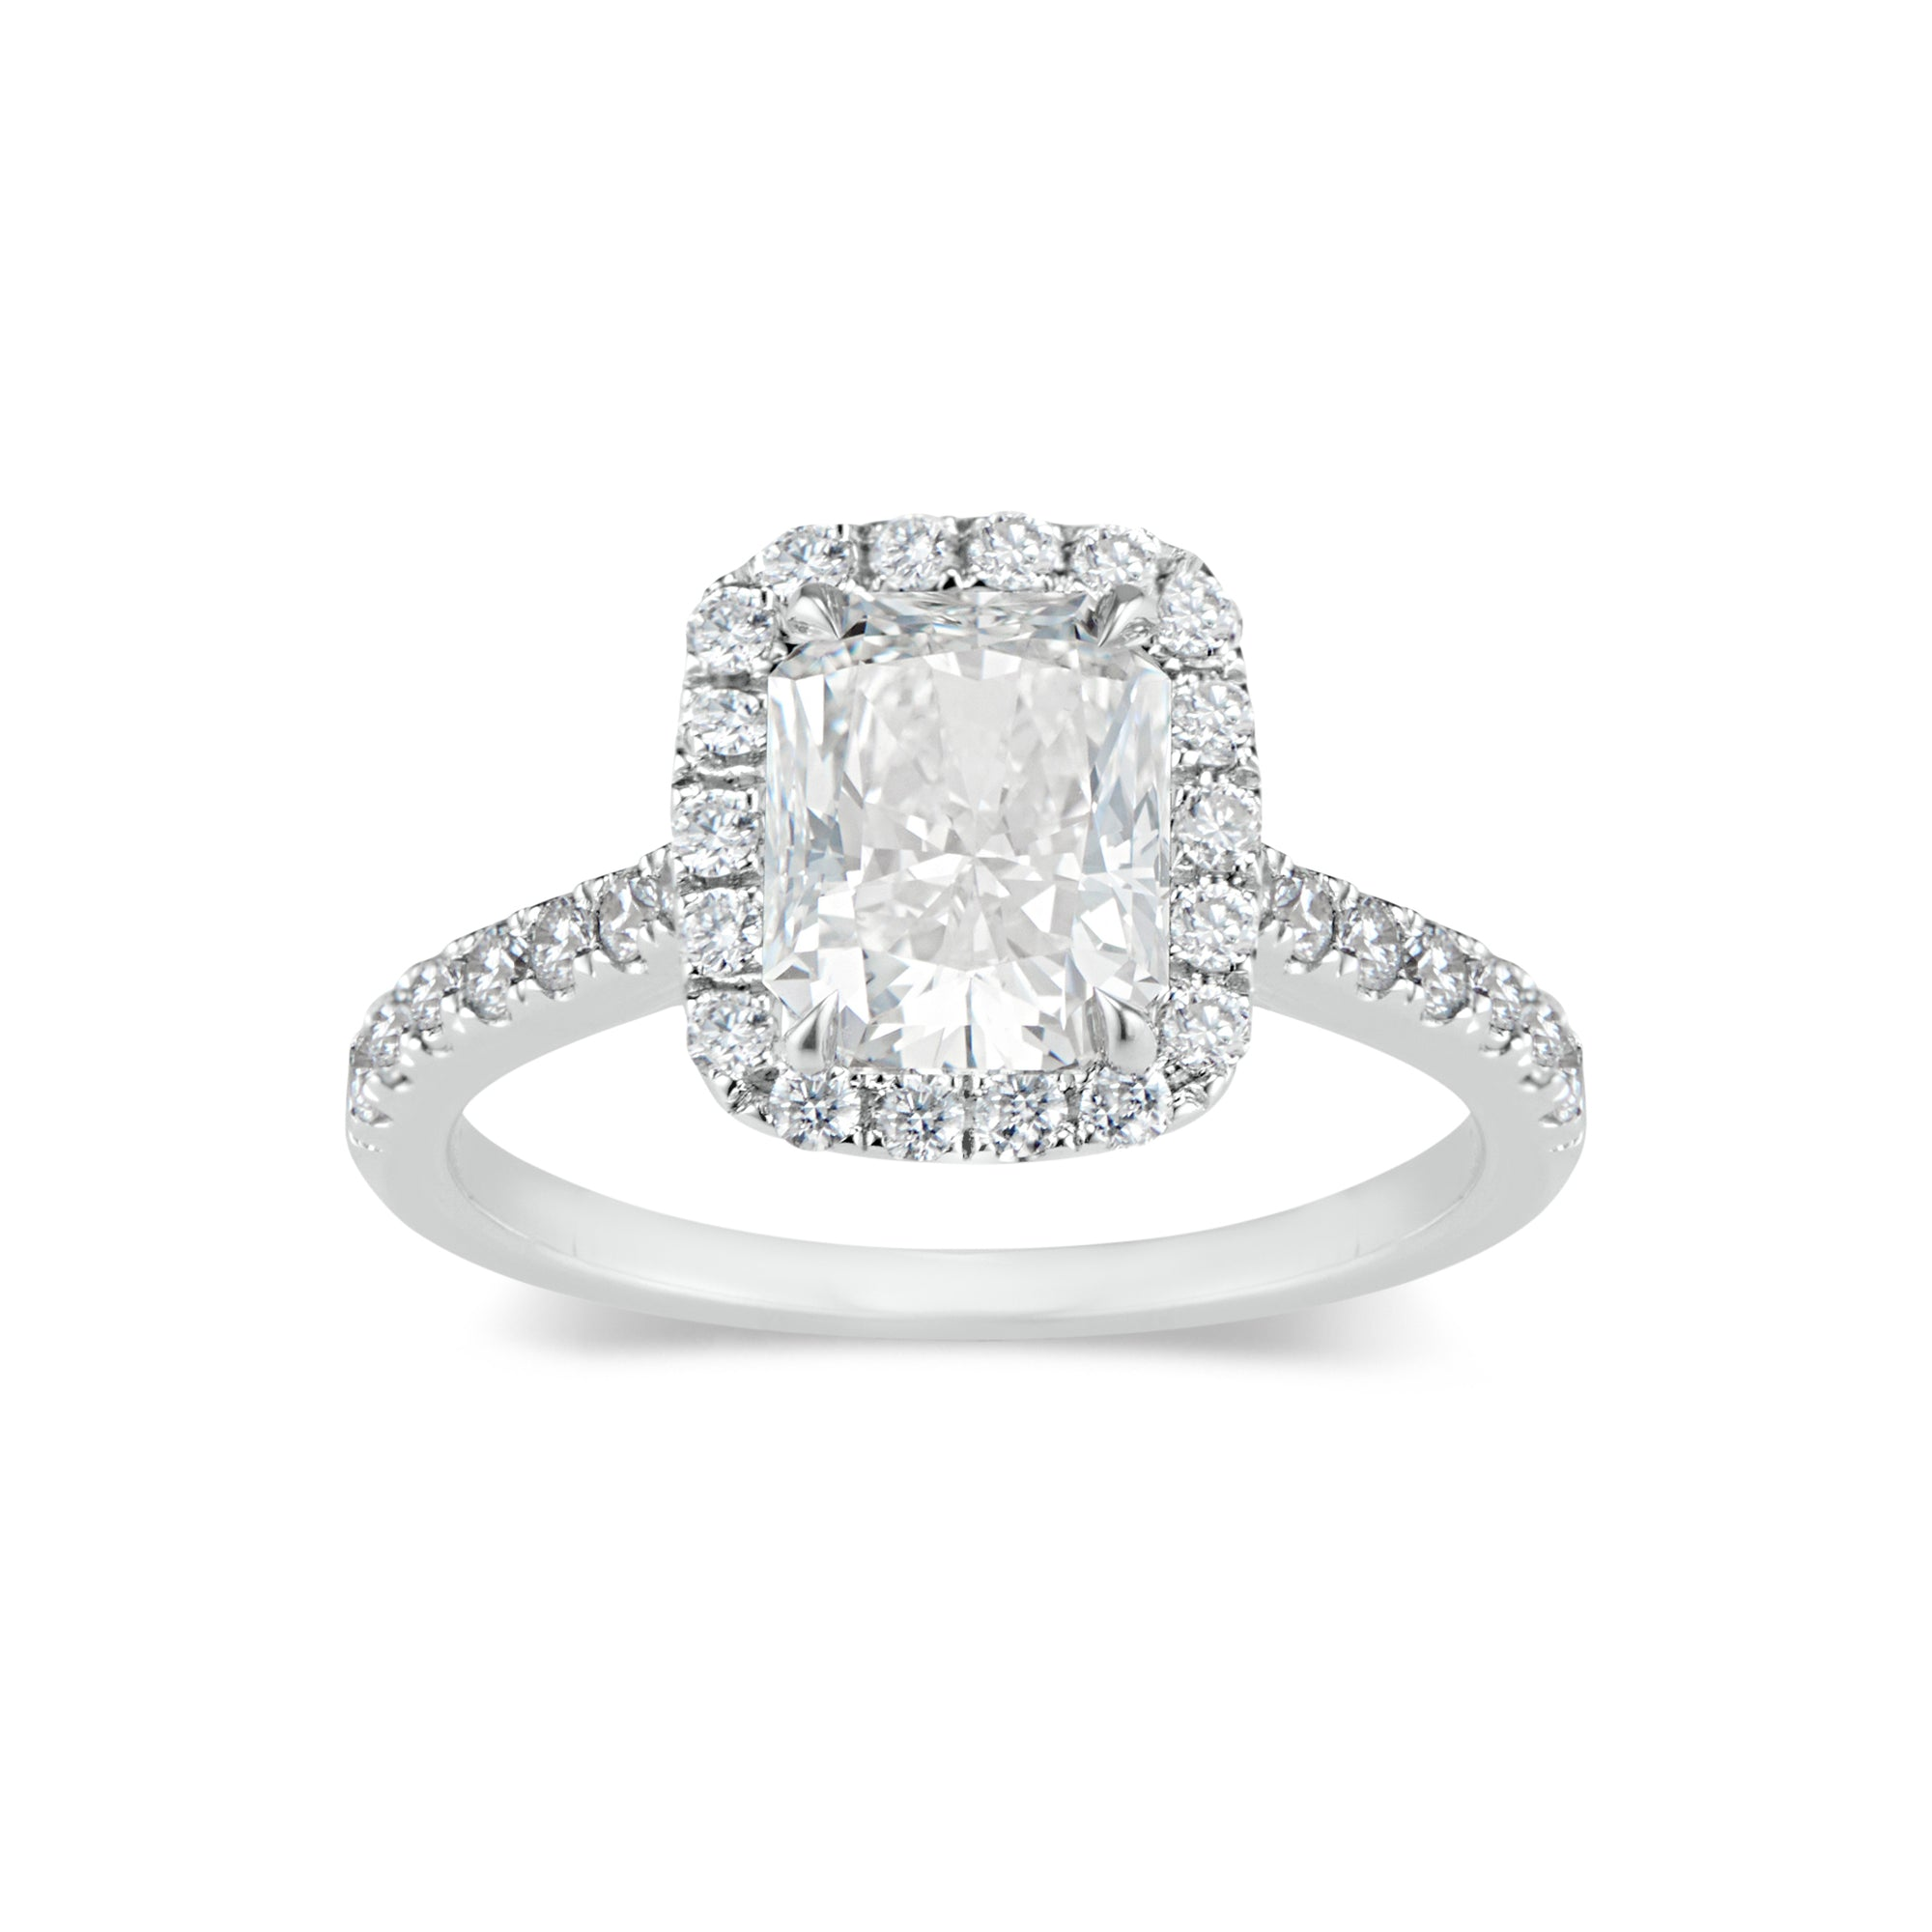 Elongated Radiant-Cut Halo Diamond Engagement Ring